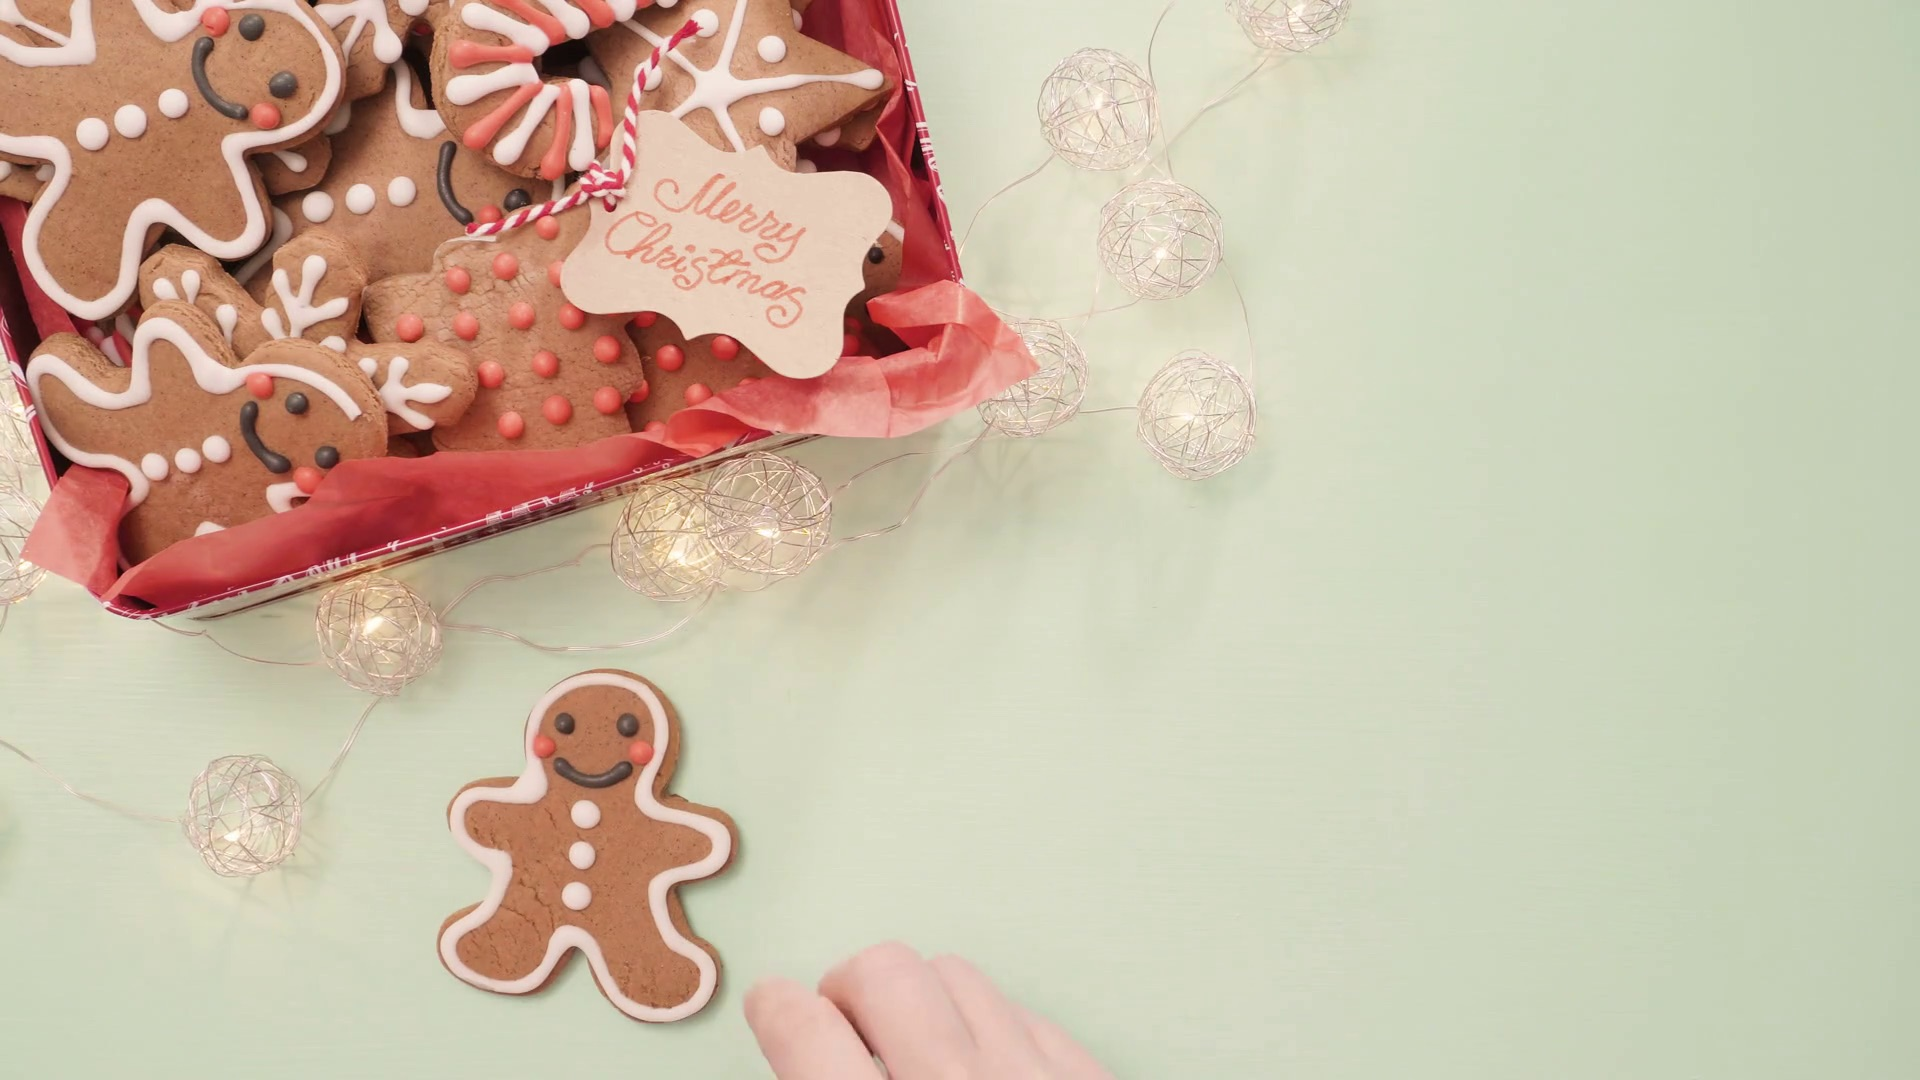 baking gingerbread